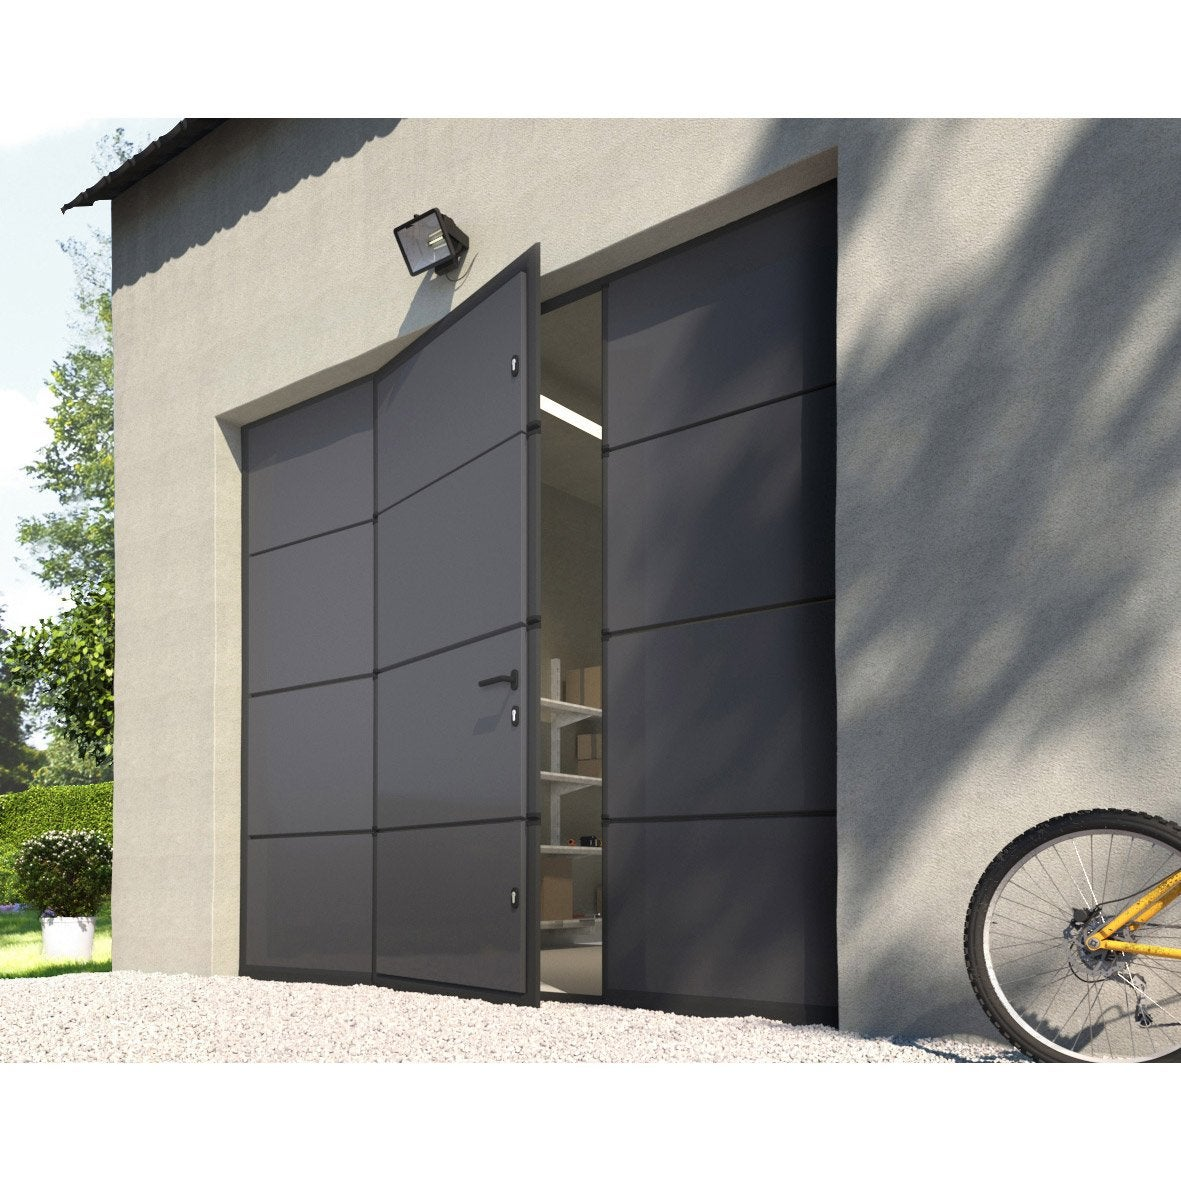 Porte de garage sectionnelle motoris e artens essentiel 200x240cm avec portillon leroy merlin - Hublot porte de garage sectionnelle ...